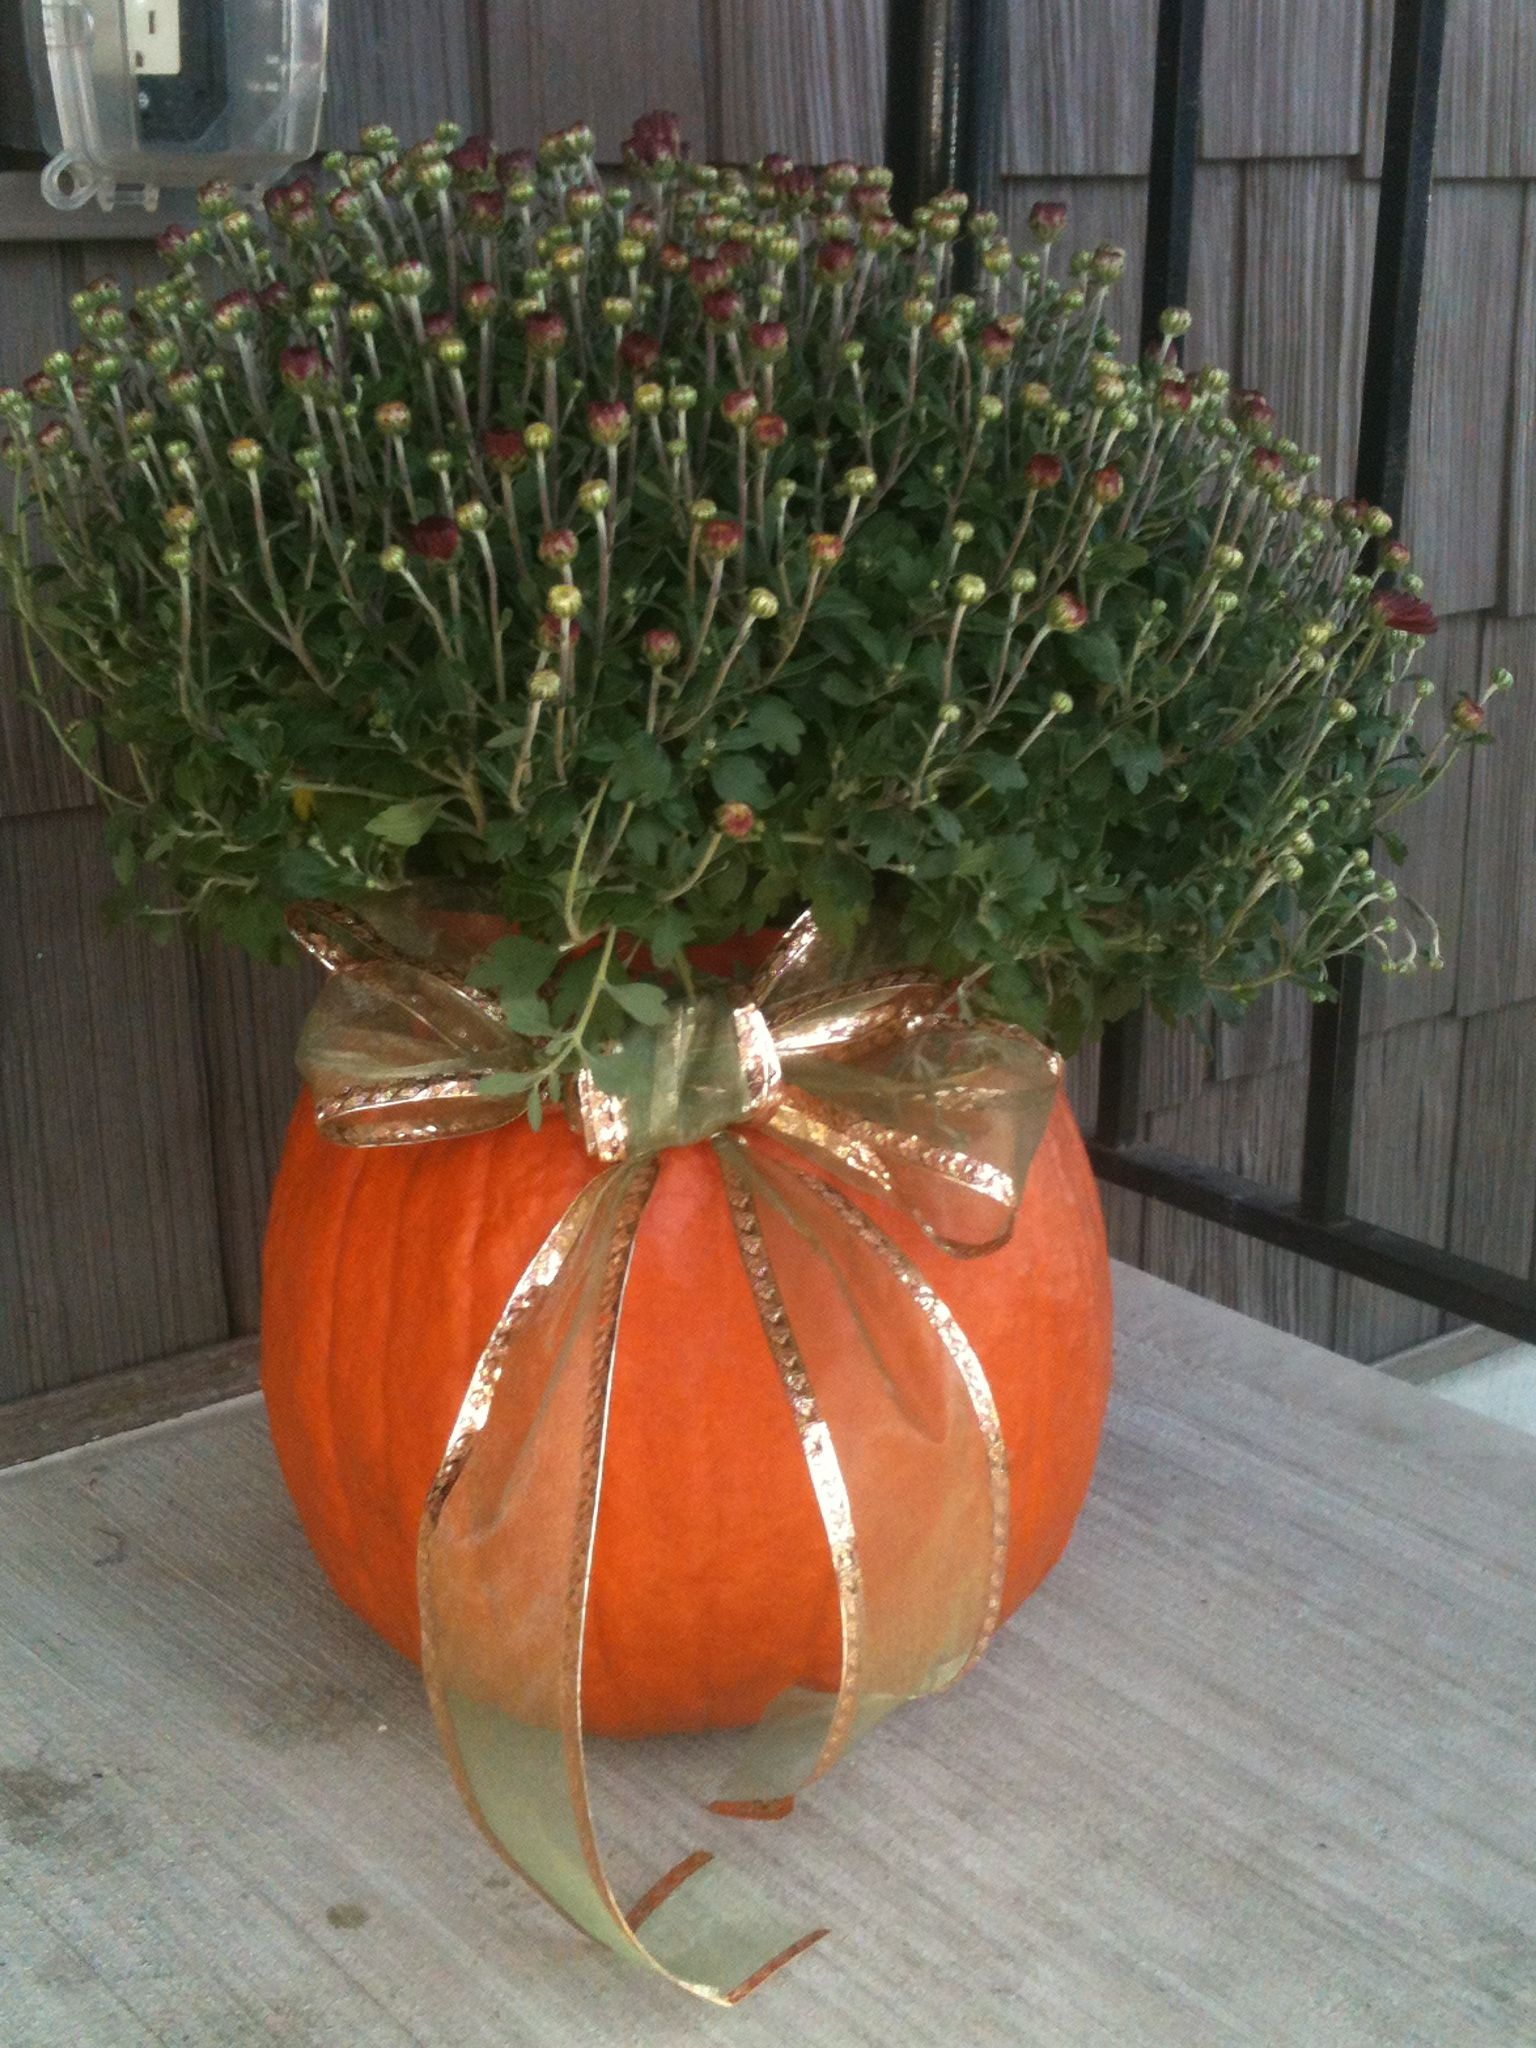 I bought the pumpking at walmart along with the plum mums! Got the ribbon at the dollar tree! Cut off the top of the pumpkin and gut it out (i kept the seeds to bake and the rest to make pumpkin pie), spray the inside with bleach and set the flowers inside. Enjoy:) Ill post more pics when the flowers bloom!